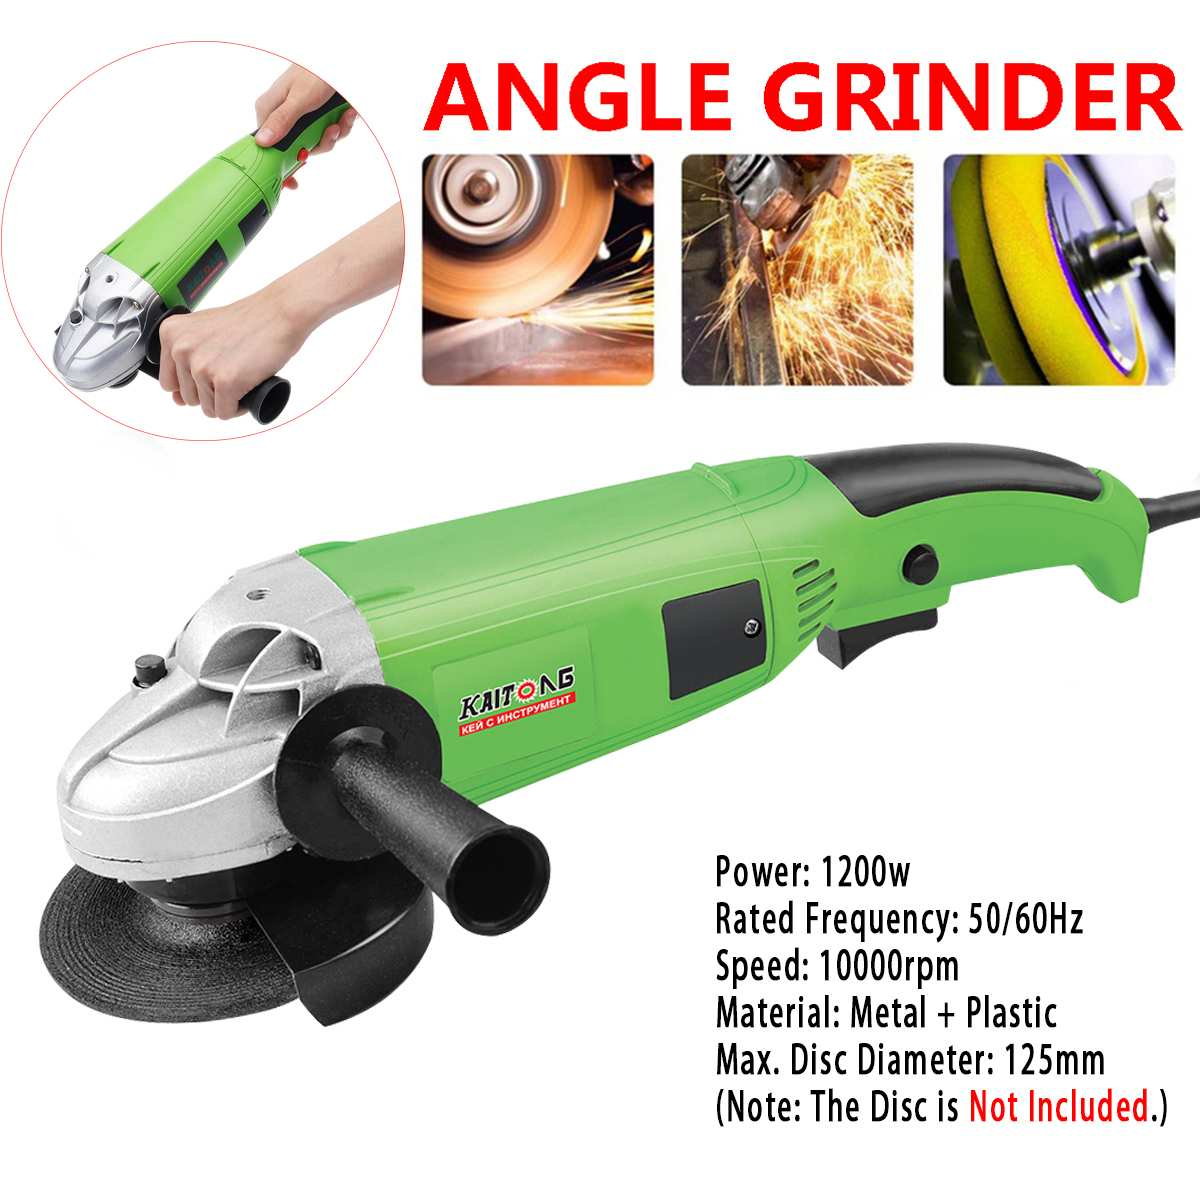 10000RPM 1200W Electric Angle Grinder 125mm Grinding Machine Metal Cutting Tool Left/Right Adjustable Anti-Slip Auxiliary Handle10000RPM 1200W Electric Angle Grinder 125mm Grinding Machine Metal Cutting Tool Left/Right Adjustable Anti-Slip Auxiliary Handle